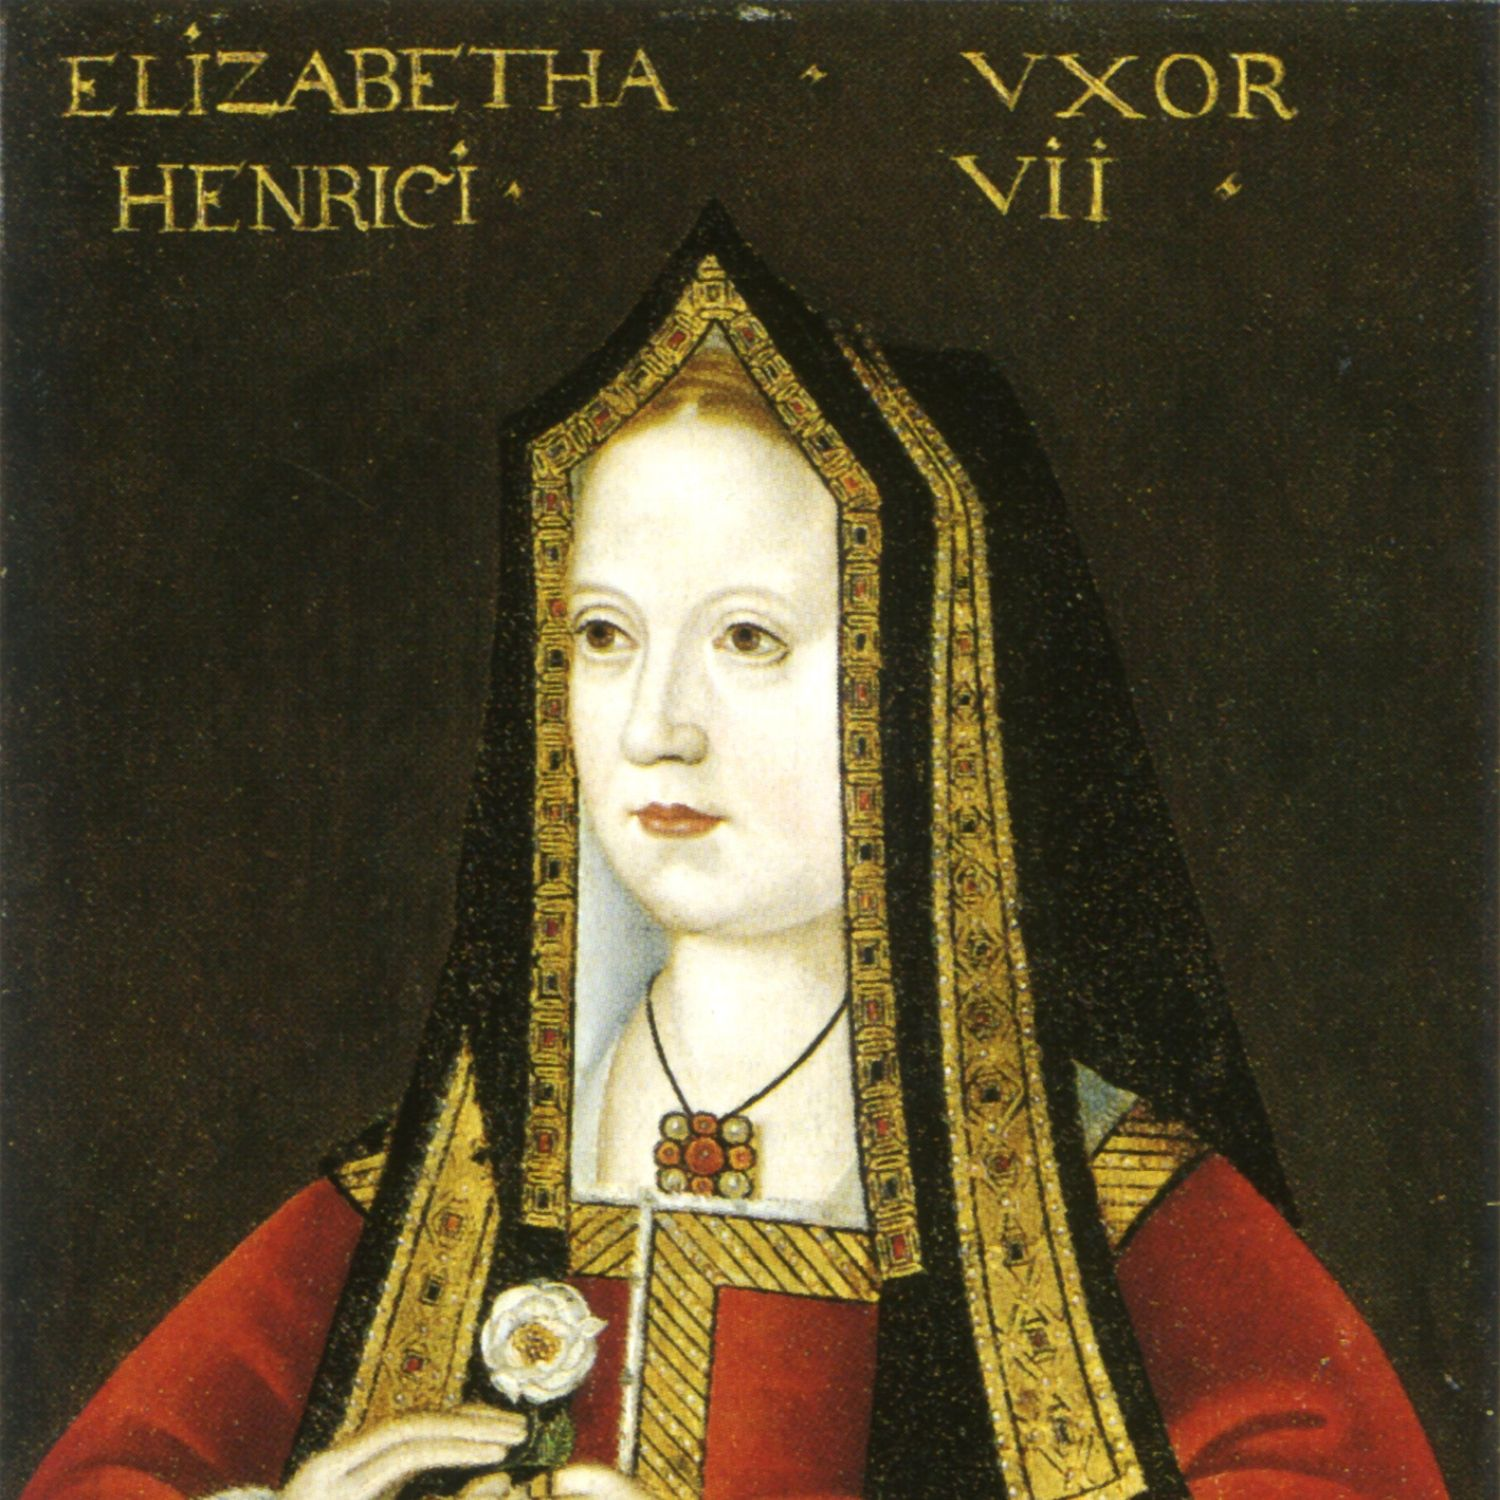 34 - Elizabeth of York (1): The White Rose and the Red